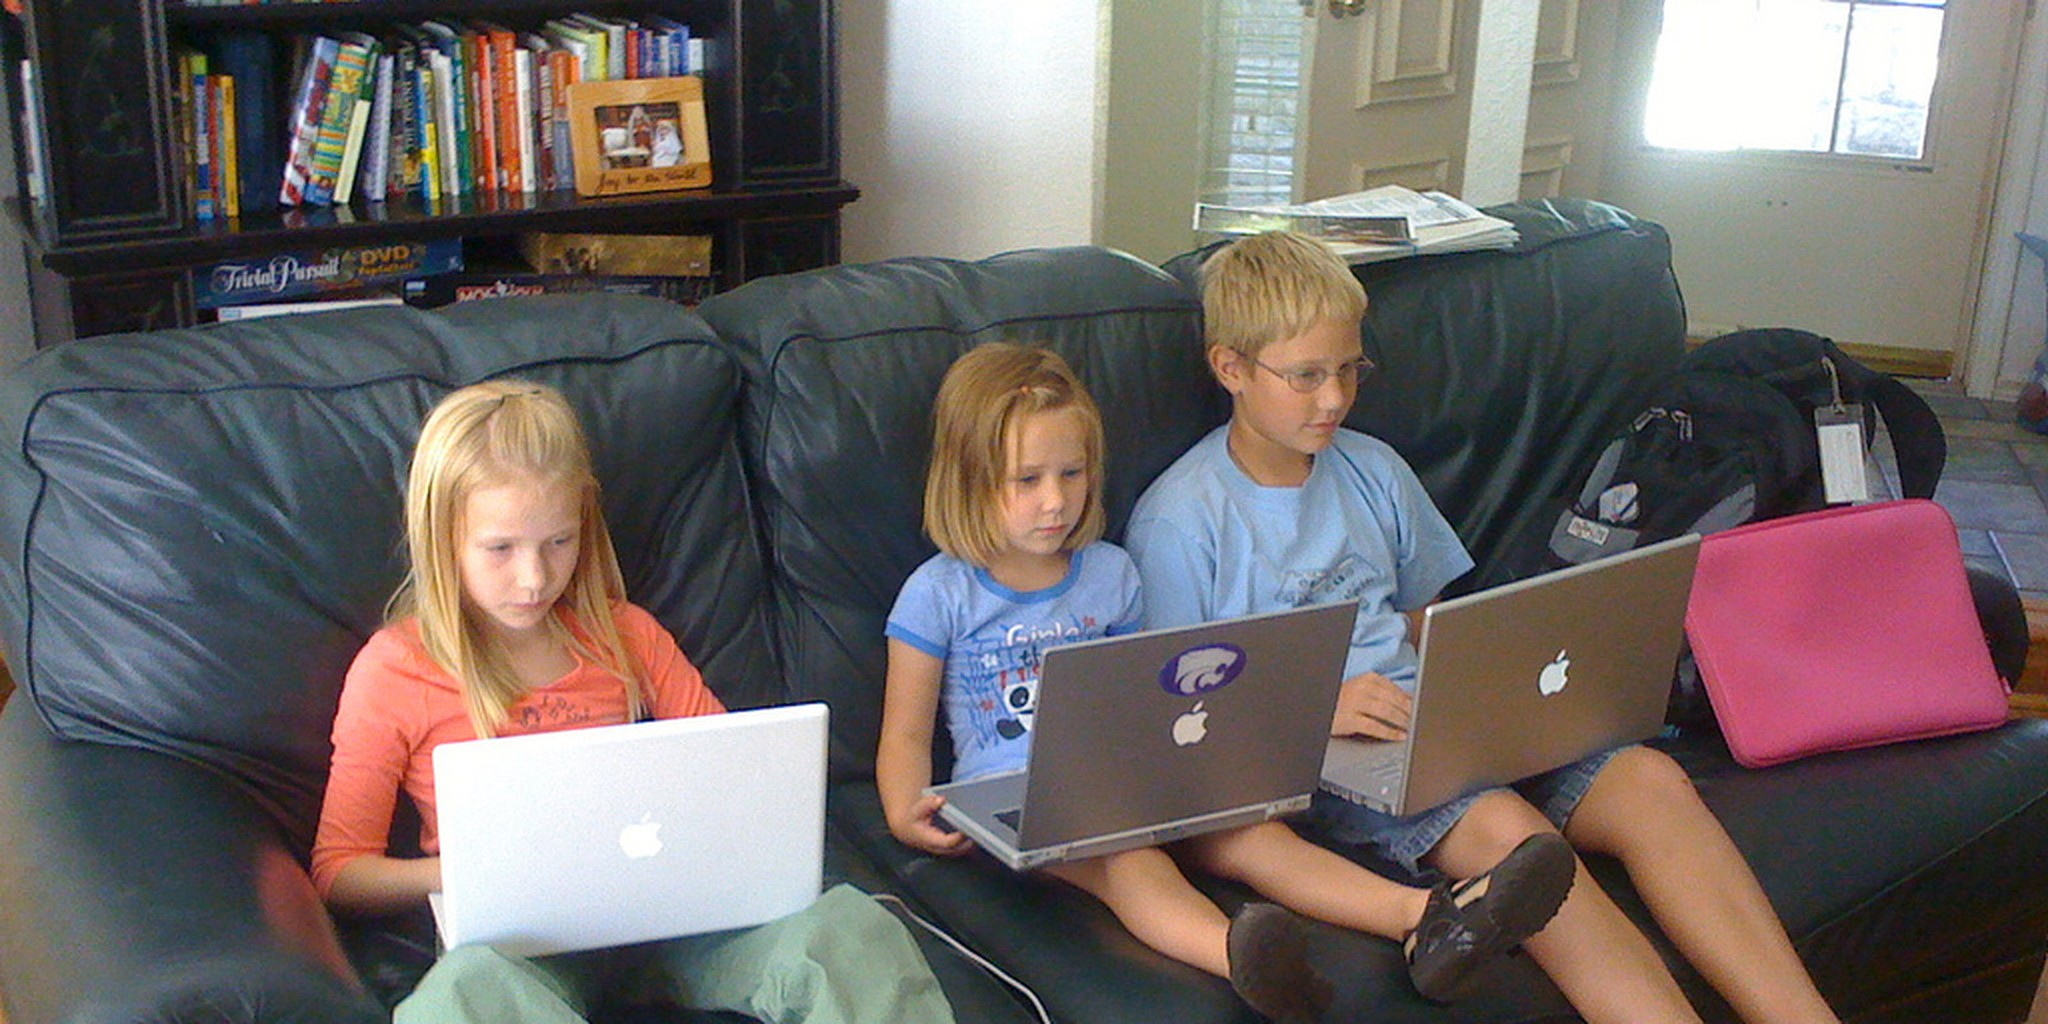 All sizes   The replacement for Saturday morning cartoons   Flickr - Photo Sharing!